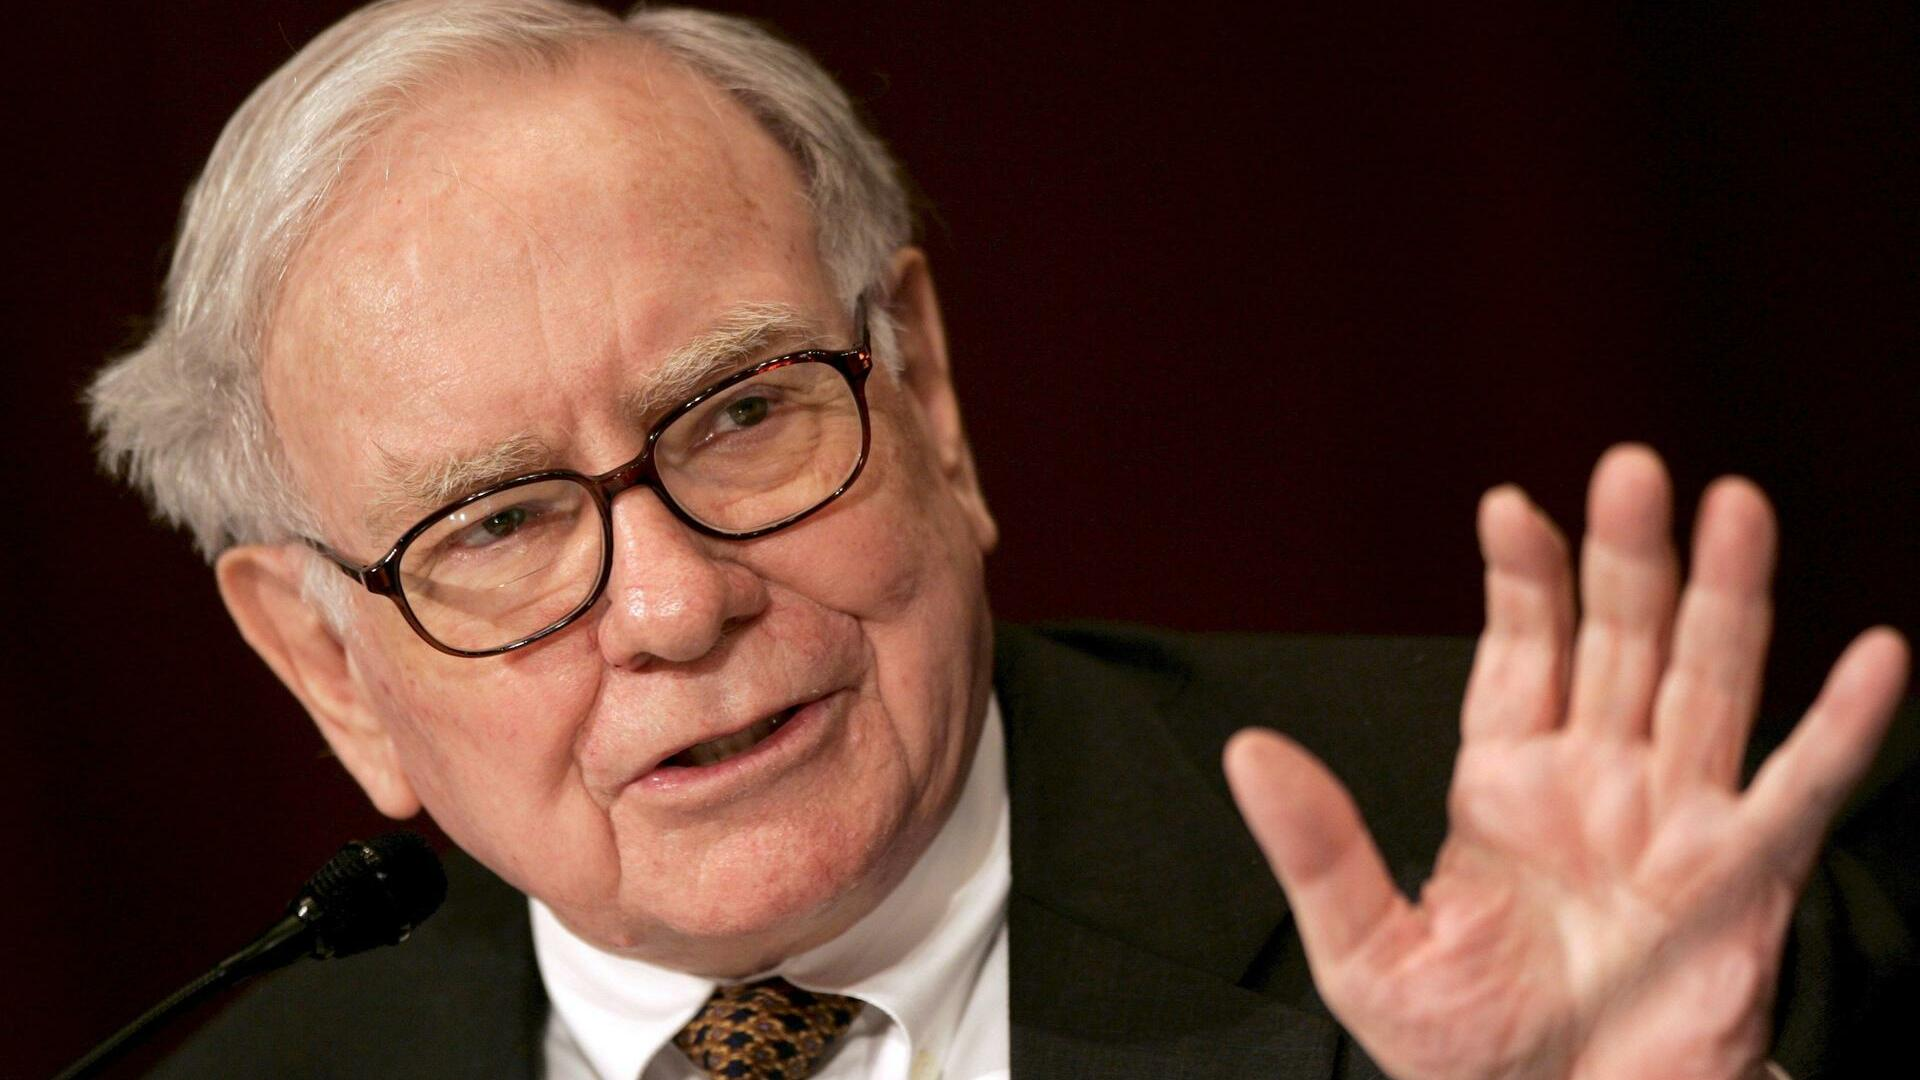 Warren Buffett Quelle: dpa